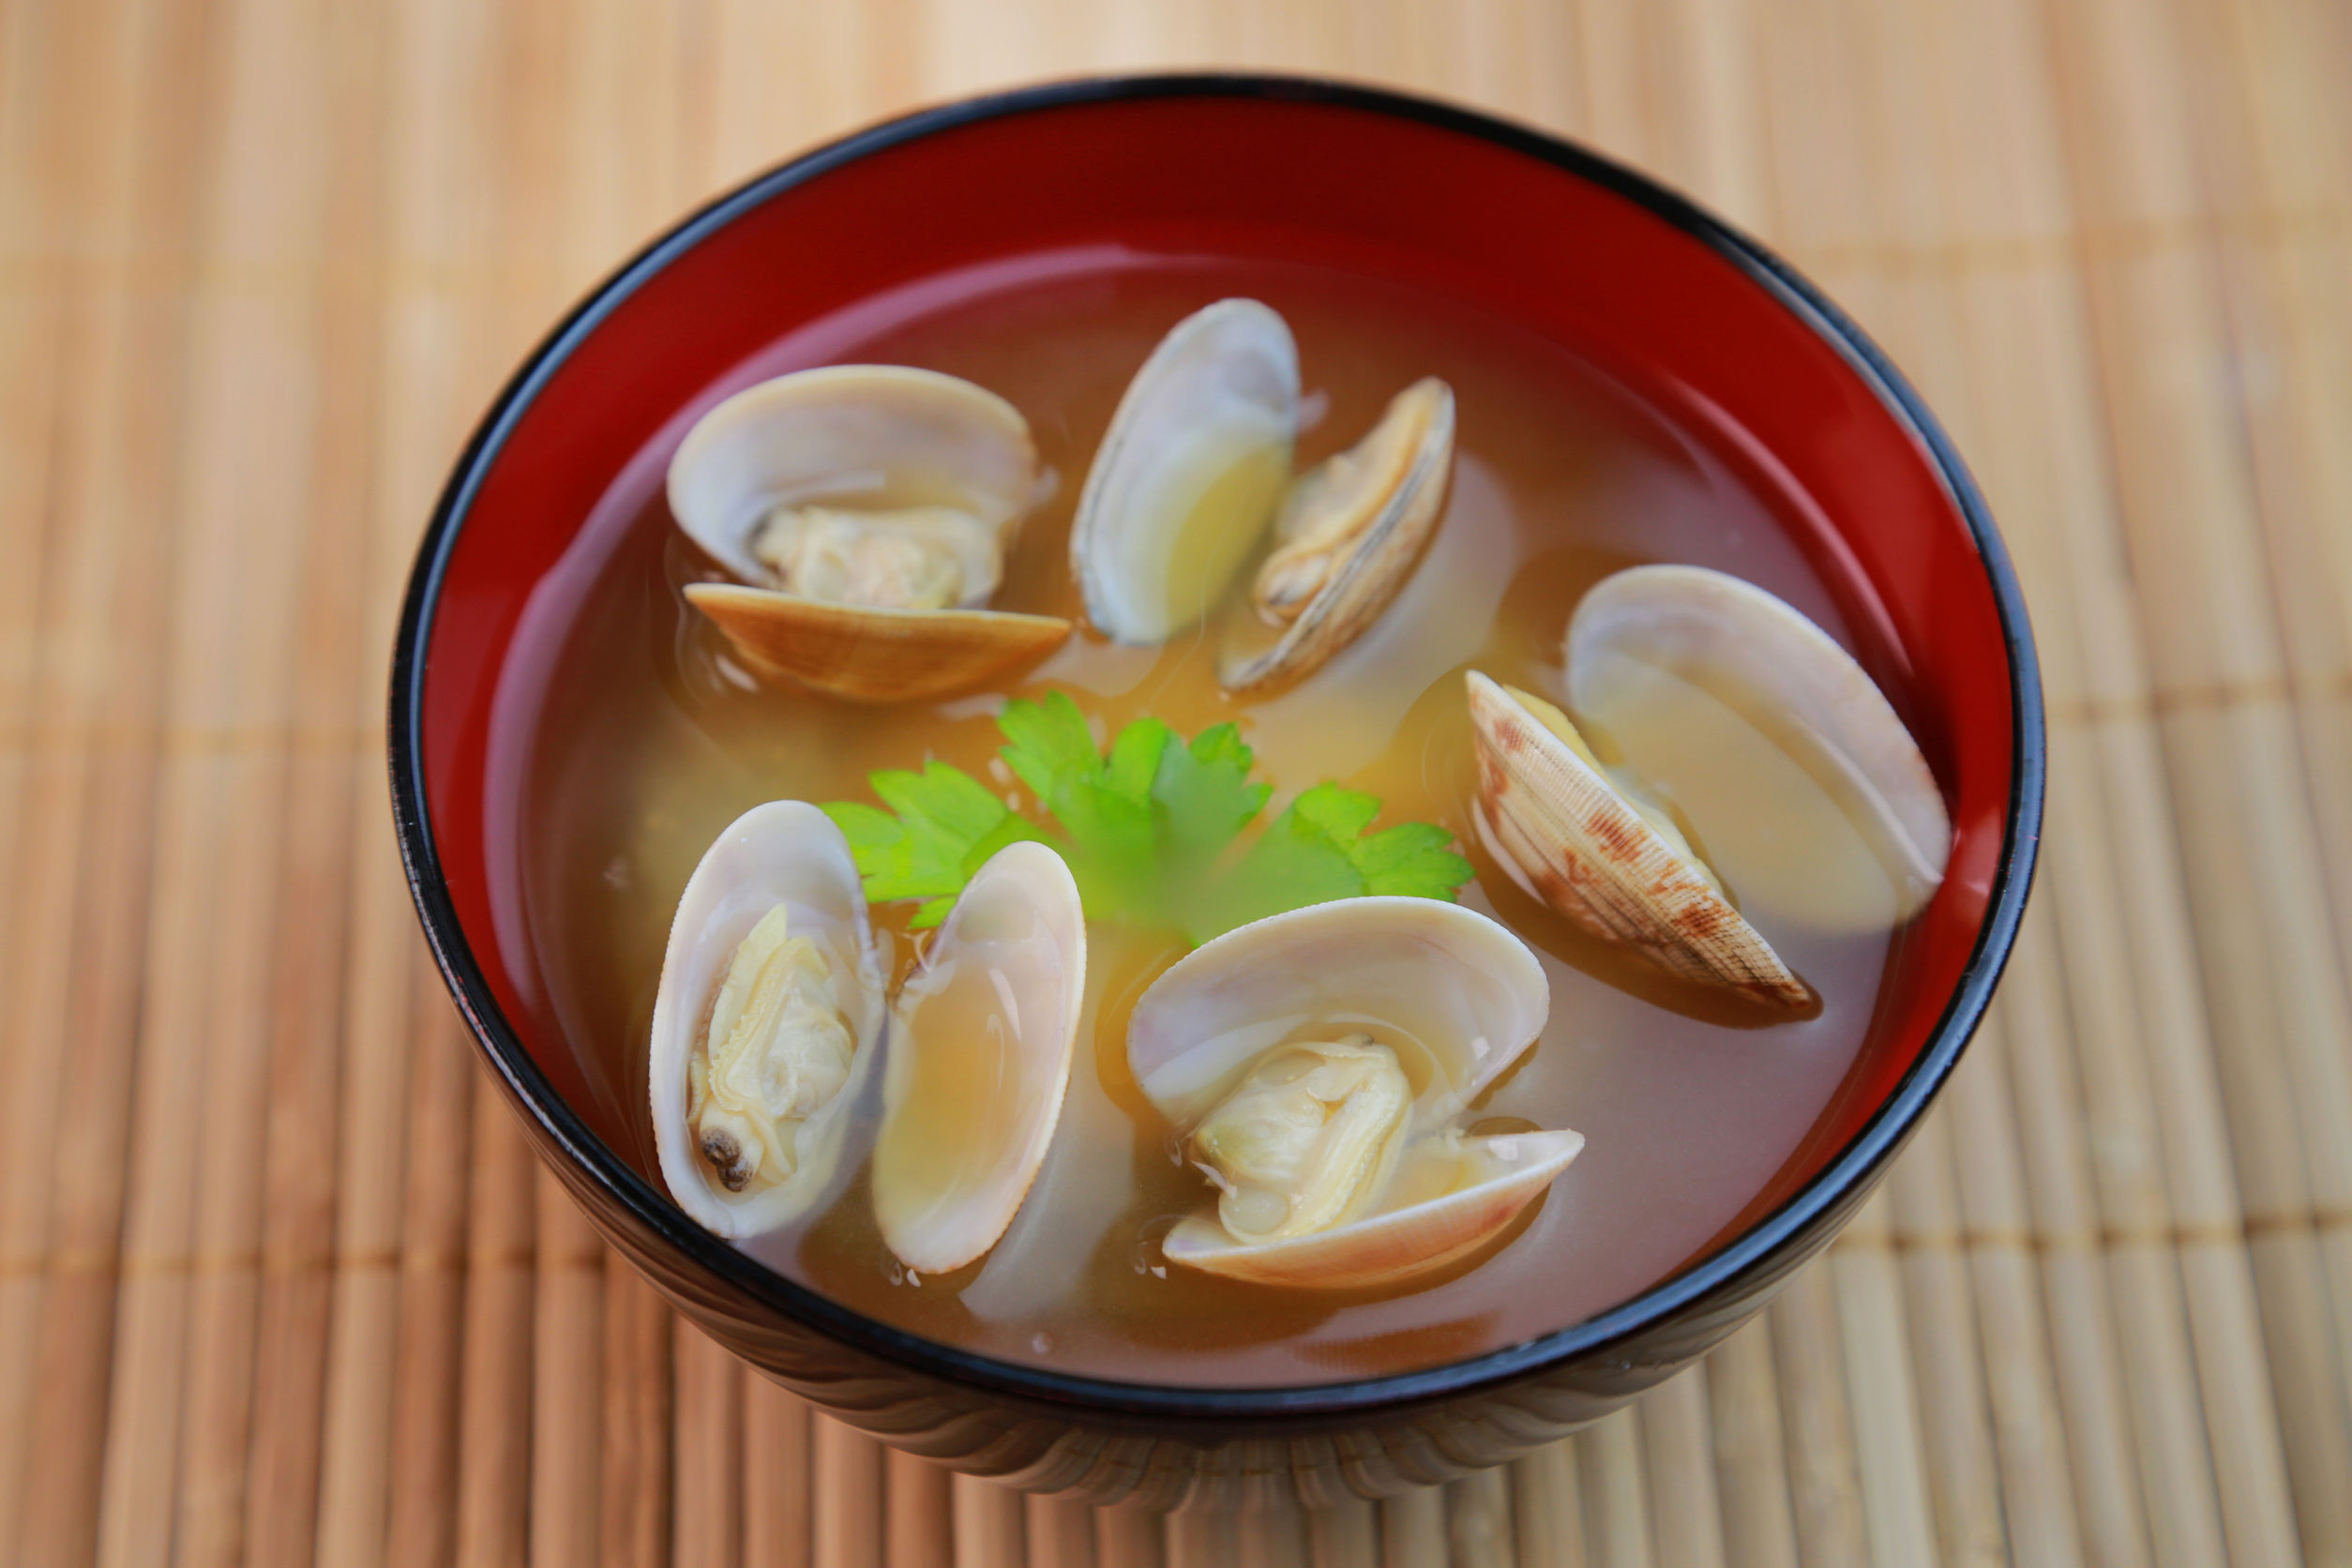 yasuhiroamano150300423.jpg - miso soup of the short-necked clam / japanese food